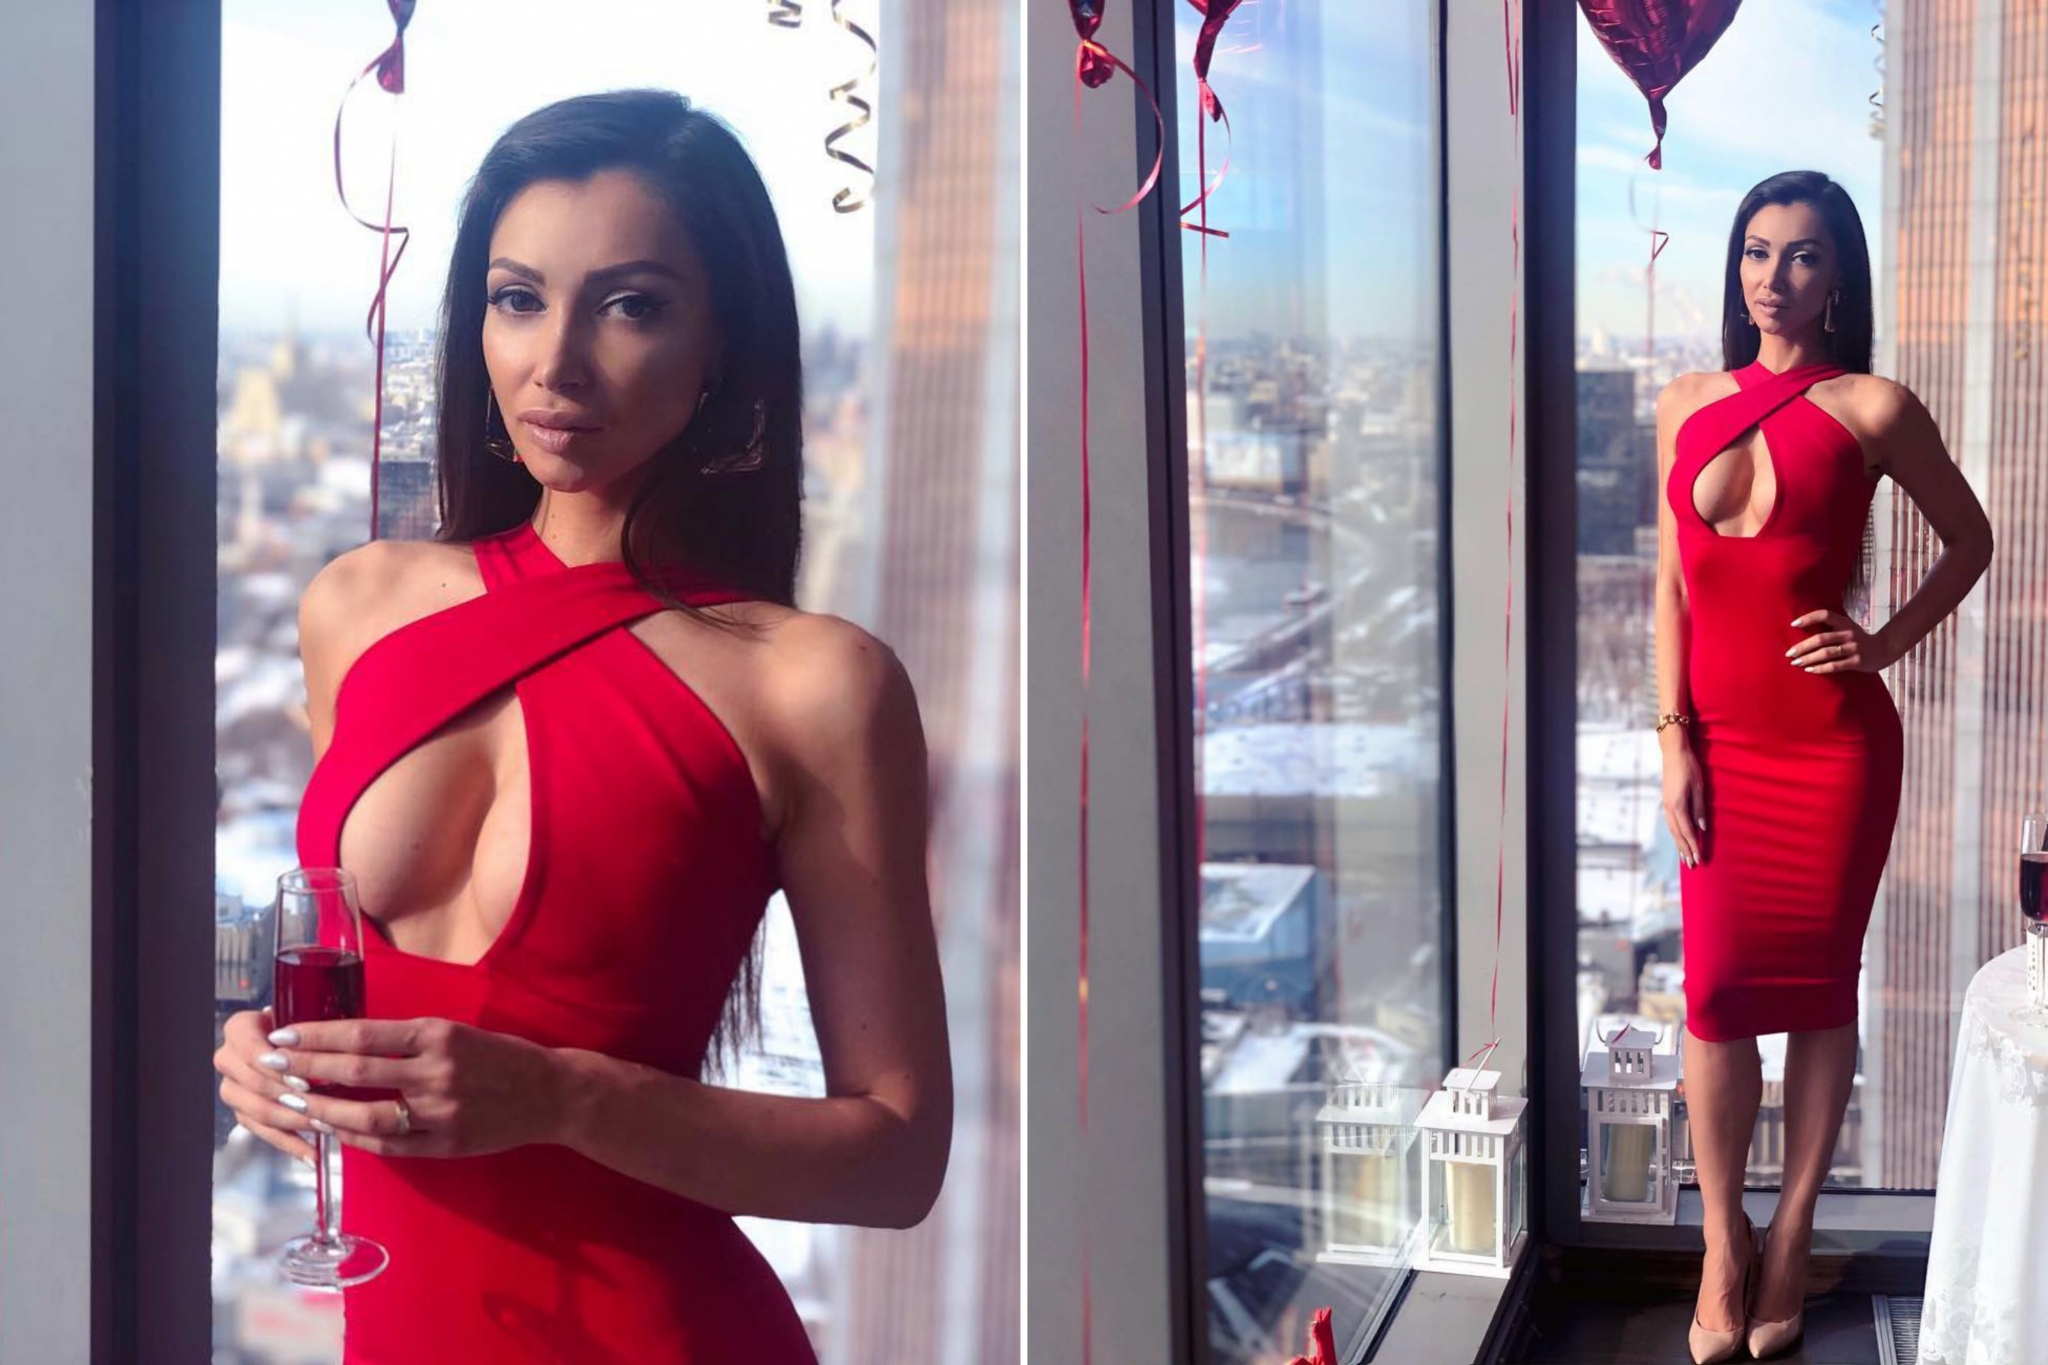 Julia in red in the Moscow City skyscraper